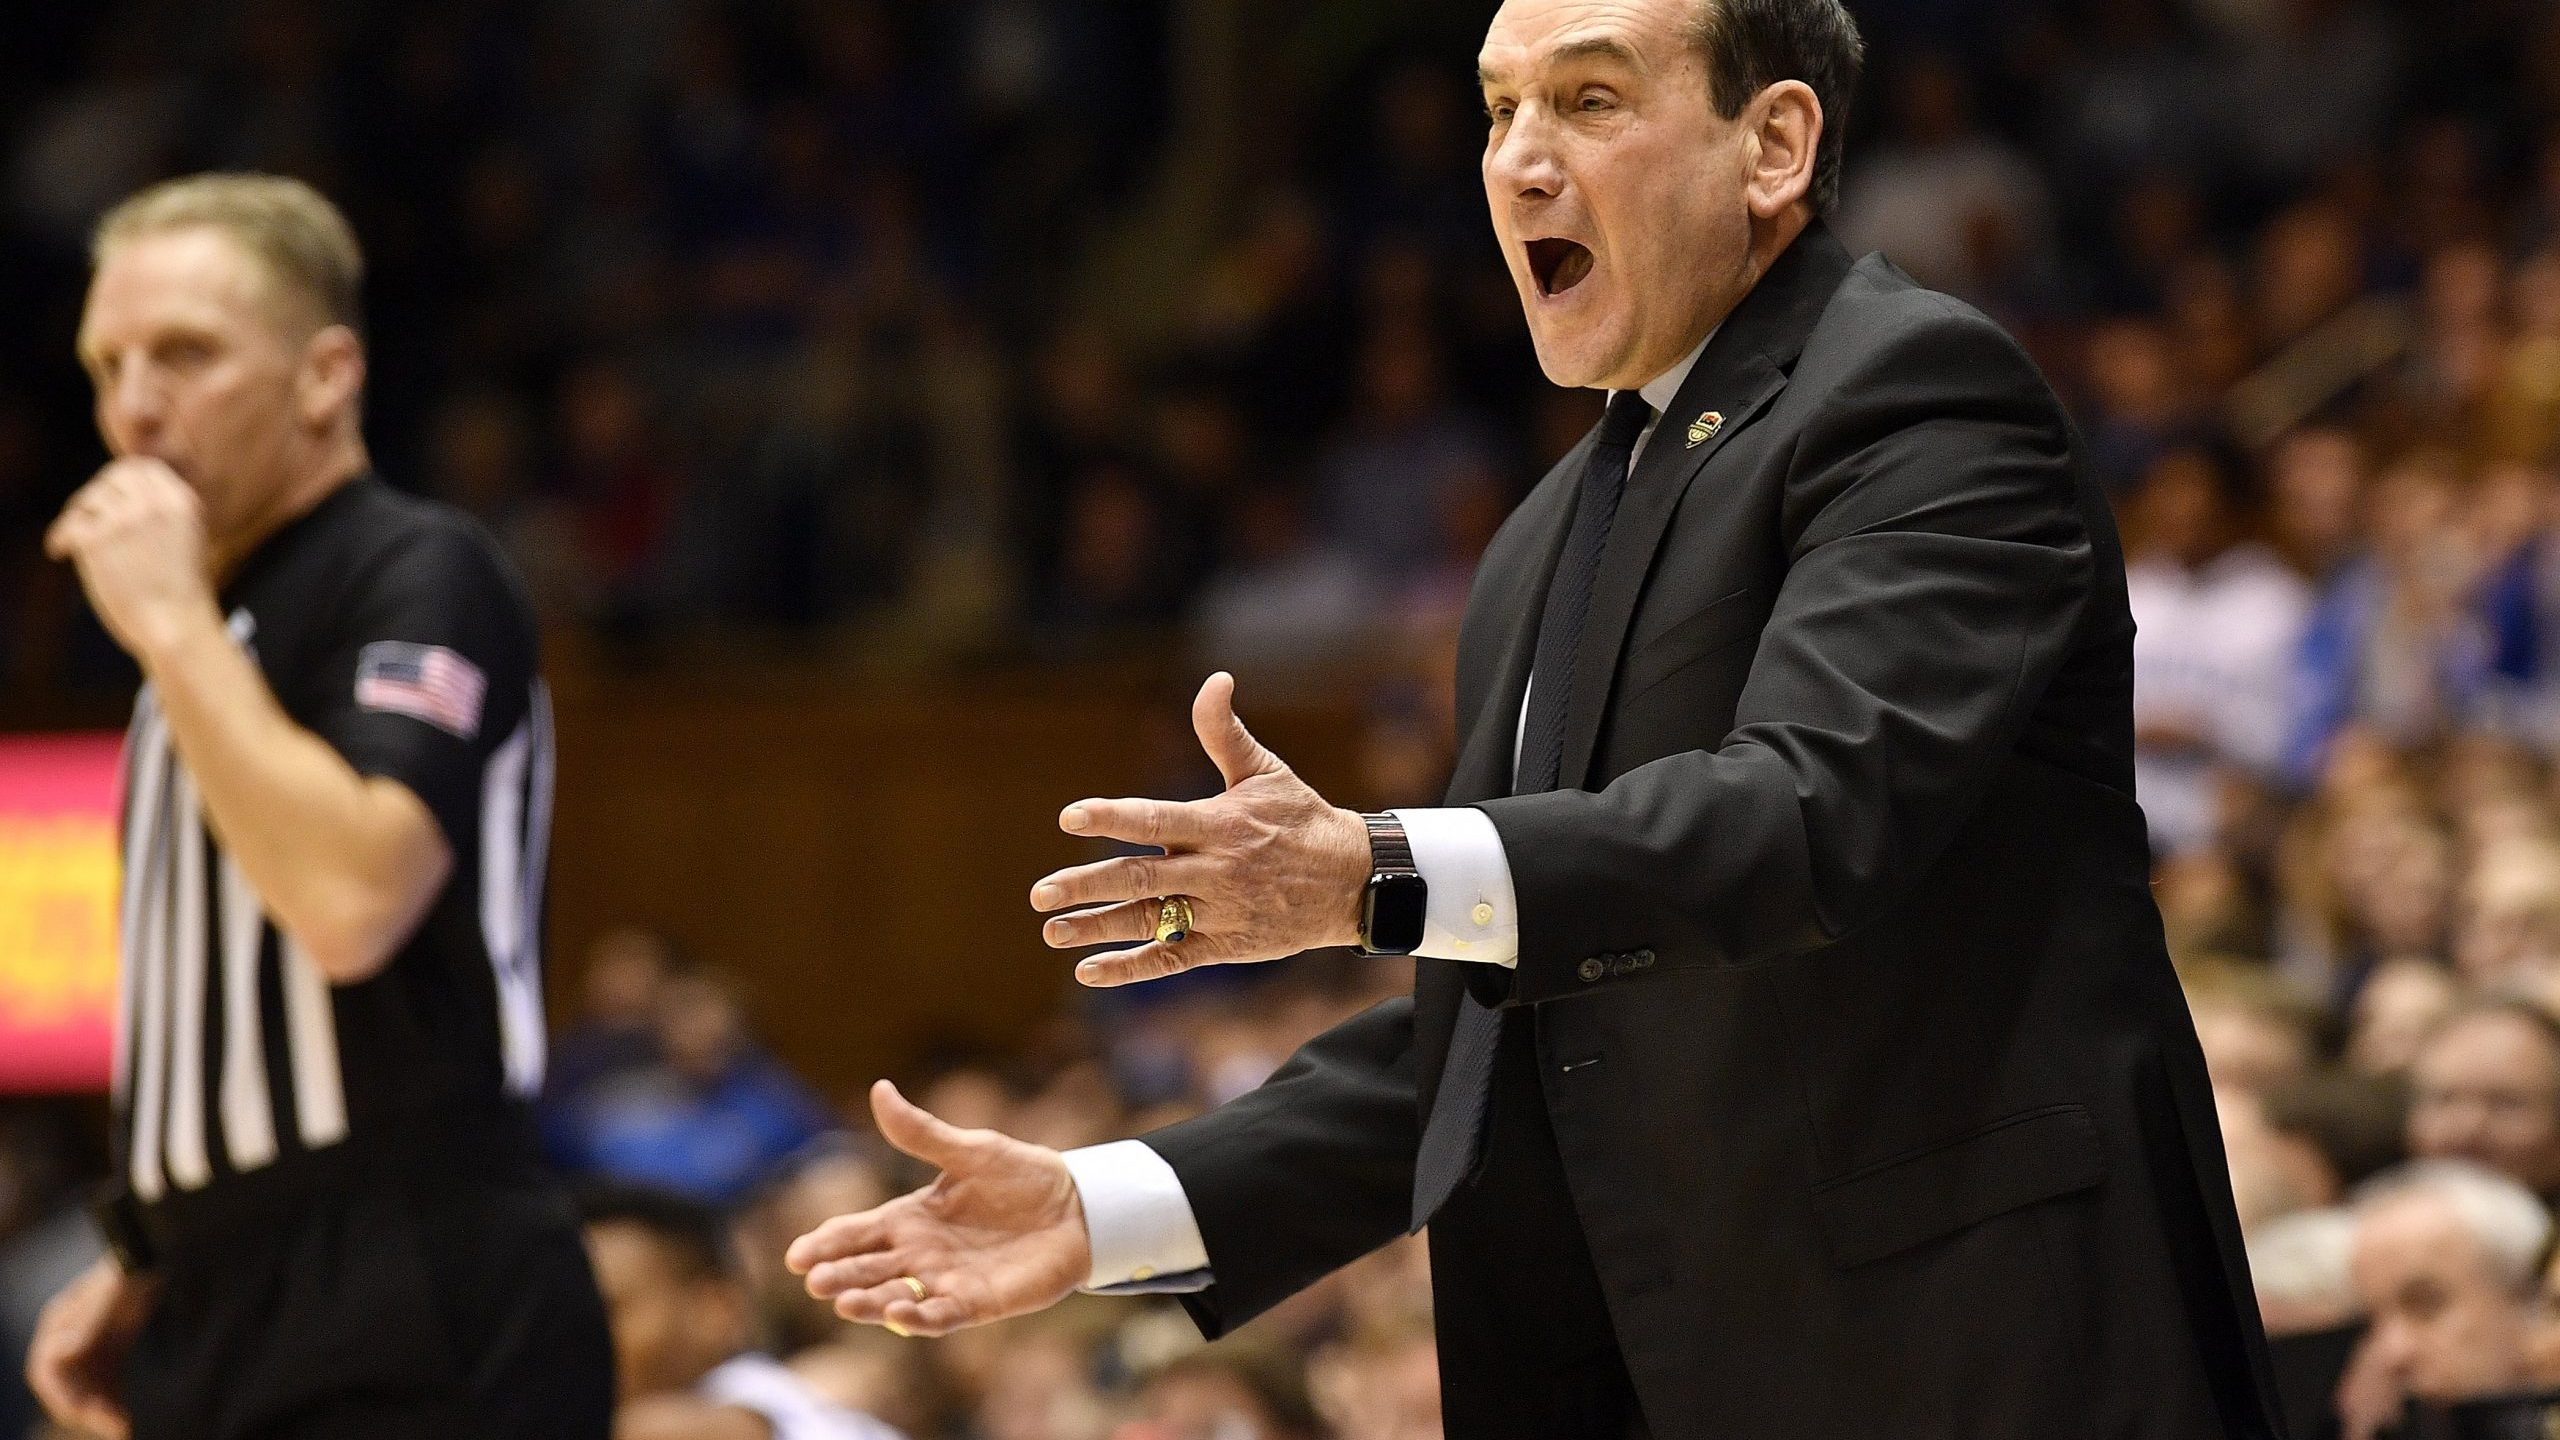 Duke's Mike Krzyzewski coaches his Blue Devils against Pitt on January 28. (Photo by Grant Halverson/Getty Images)